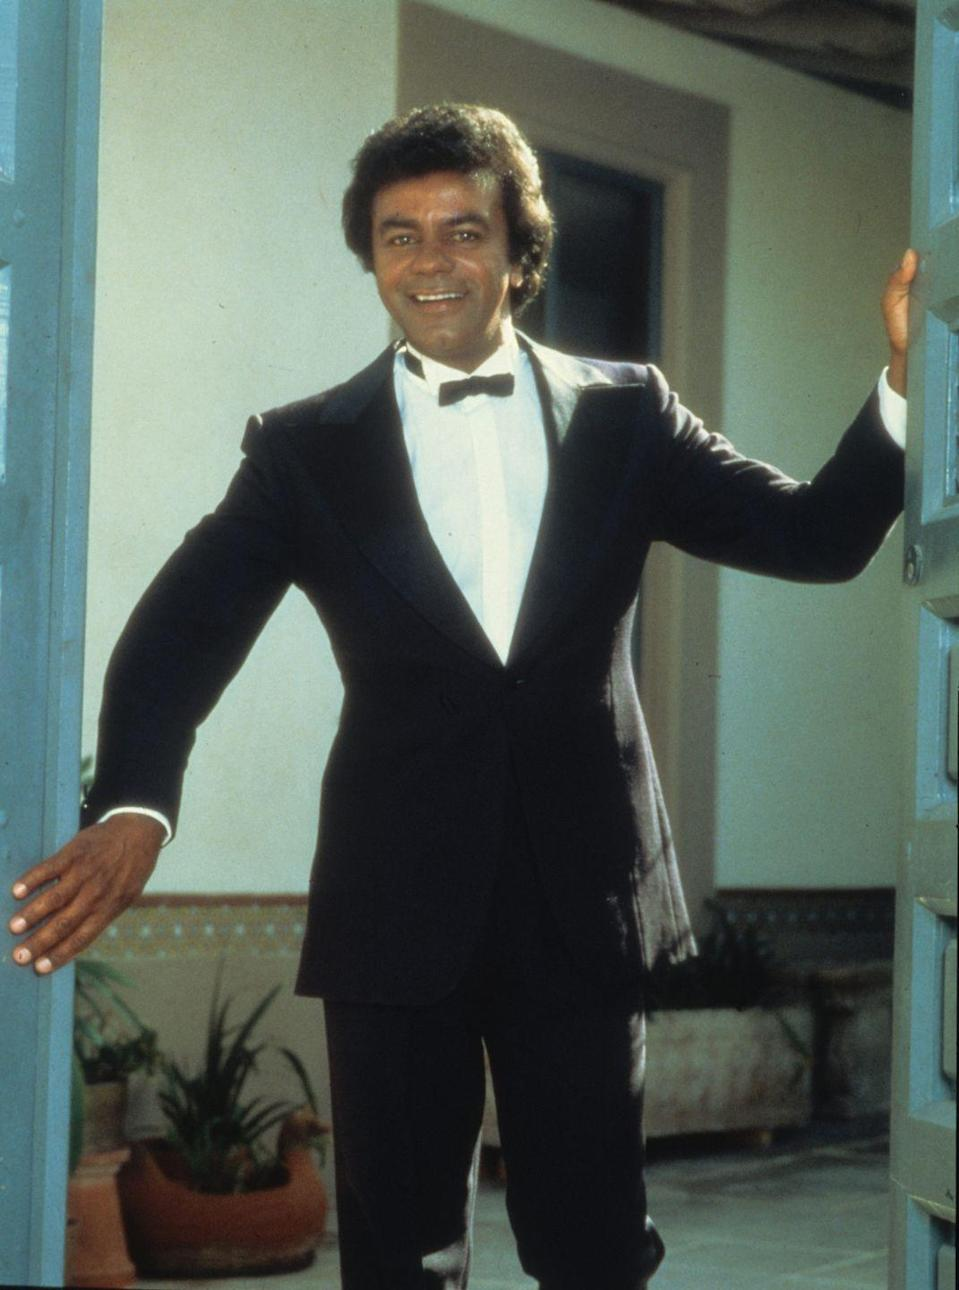 """<p>This Johnny Mathis pop song is from his first Christmas album ever — in total, he's released six throughout his career.</p><p><a class=""""link rapid-noclick-resp"""" href=""""https://www.amazon.com/Sleigh-Ride/dp/B00EJXW8TA?tag=syn-yahoo-20&ascsubtag=%5Bartid%7C10055.g.2680%5Bsrc%7Cyahoo-us"""" rel=""""nofollow noopener"""" target=""""_blank"""" data-ylk=""""slk:AMAZON"""">AMAZON</a> <a class=""""link rapid-noclick-resp"""" href=""""https://go.redirectingat.com?id=74968X1596630&url=https%3A%2F%2Fitunes.apple.com%2Fus%2Falbum%2Fsleigh-ride%2F192688332&sref=https%3A%2F%2Fwww.goodhousekeeping.com%2Fholidays%2Fchristmas-ideas%2Fg2680%2Fchristmas-songs%2F"""" rel=""""nofollow noopener"""" target=""""_blank"""" data-ylk=""""slk:ITUNES"""">ITUNES</a></p><p><strong>RELATED: </strong><a href=""""https://www.goodhousekeeping.com/holidays/christmas-ideas/g2725/christmas-games"""" rel=""""nofollow noopener"""" target=""""_blank"""" data-ylk=""""slk:30 Fun Christmas Games the Whole Family Can Play"""" class=""""link rapid-noclick-resp"""">30 Fun Christmas Games the Whole Family Can Play</a></p>"""